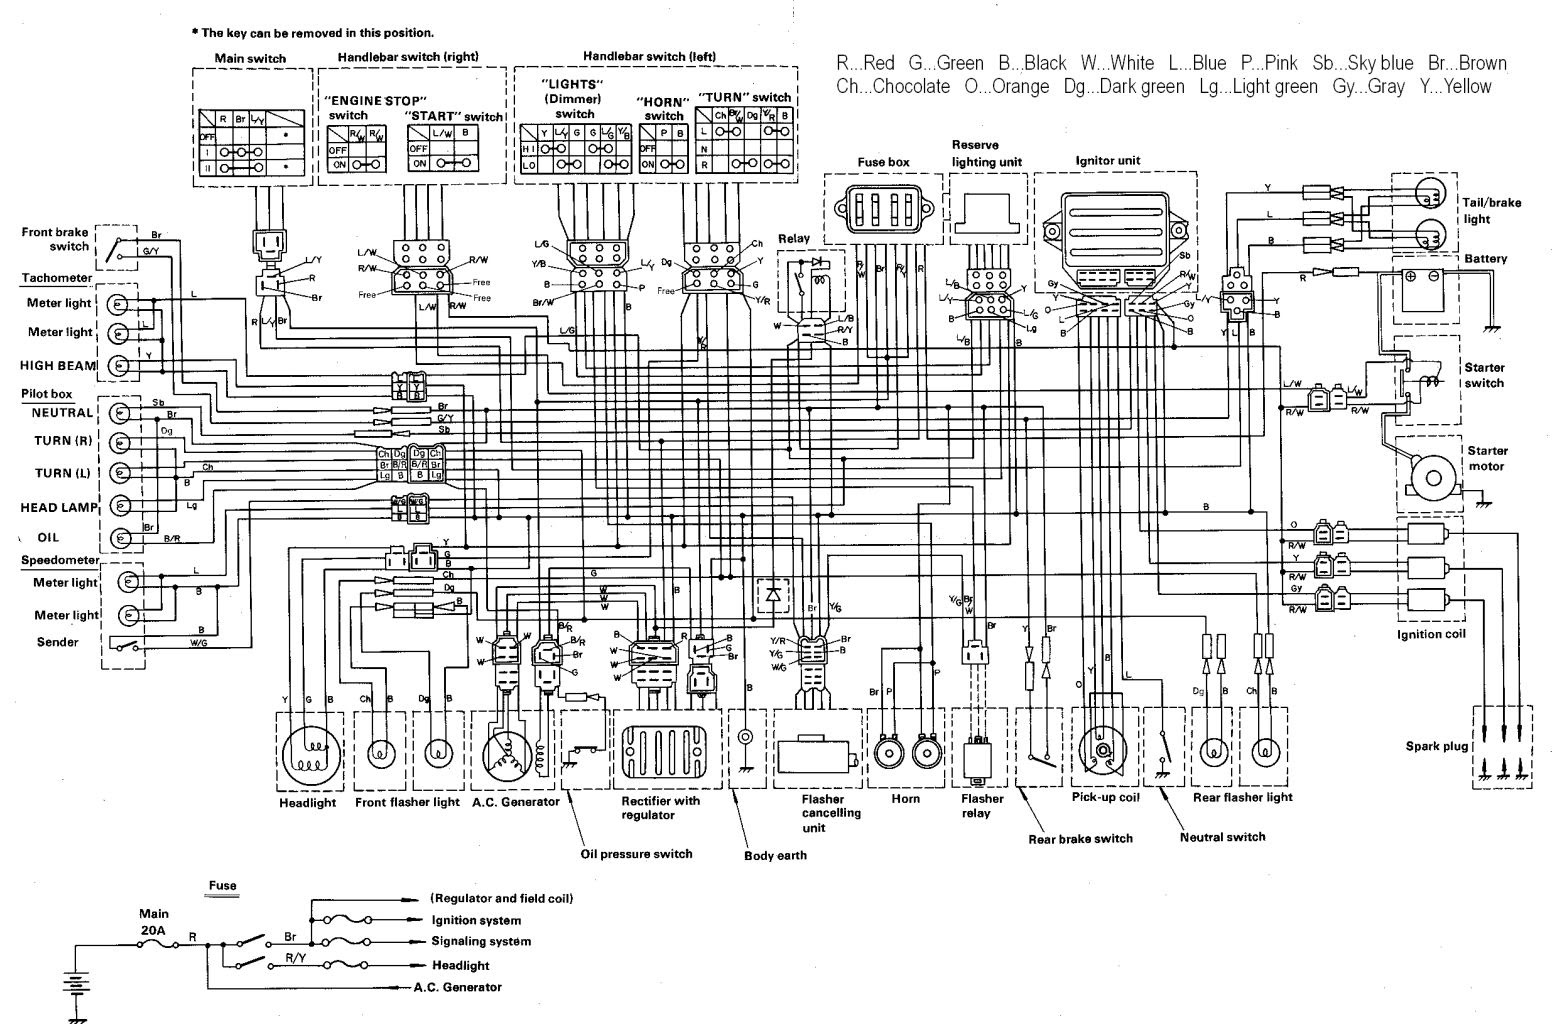 Diagram Yamaha Gt 80 Wiring Diagram Full Version Hd Quality Wiring Diagram Diagramgriggs Apd Audax It